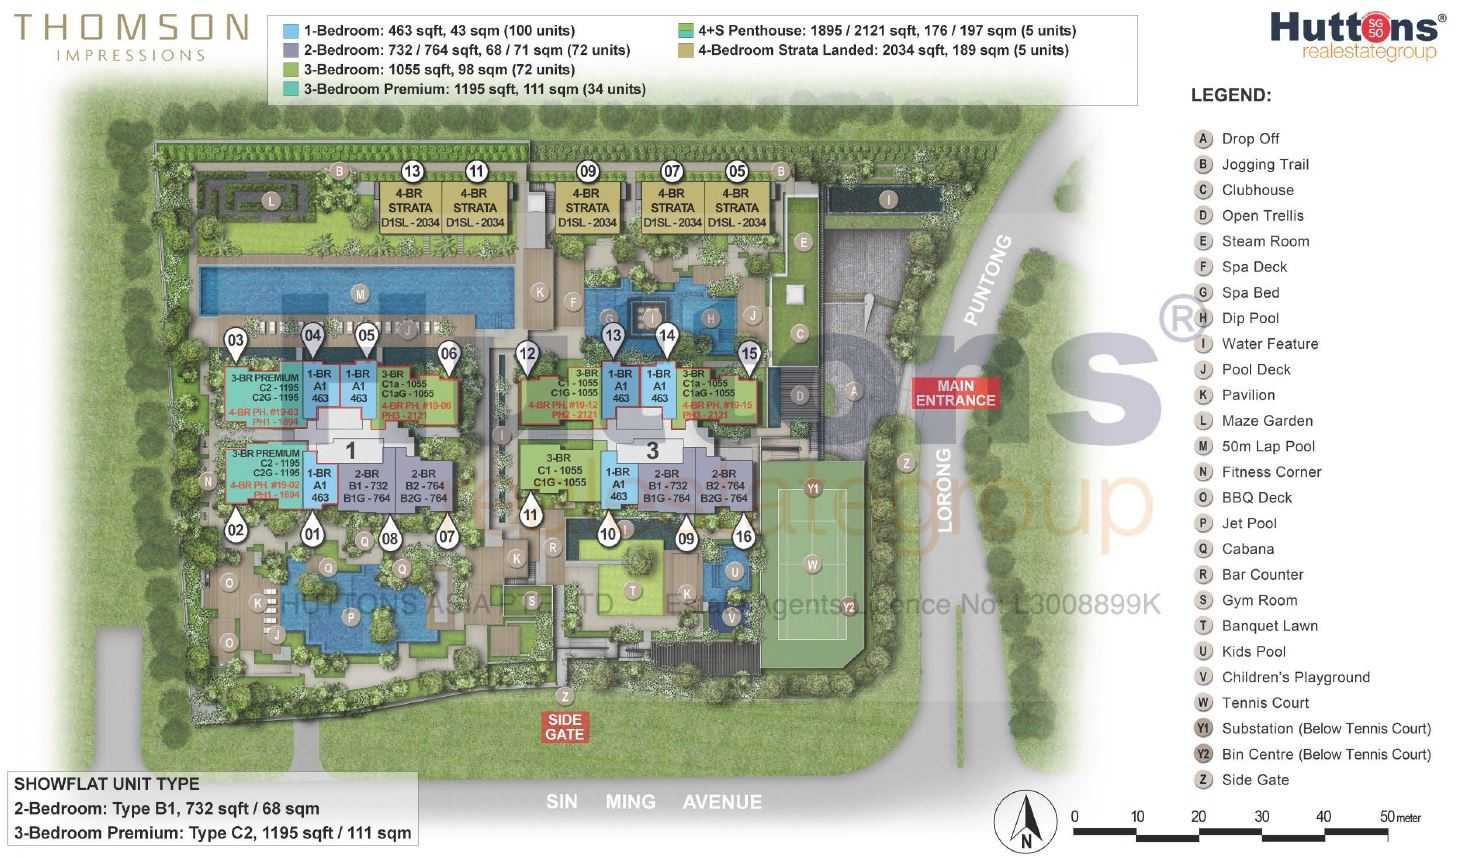 Thomson-Impressions-site-plan-units-type